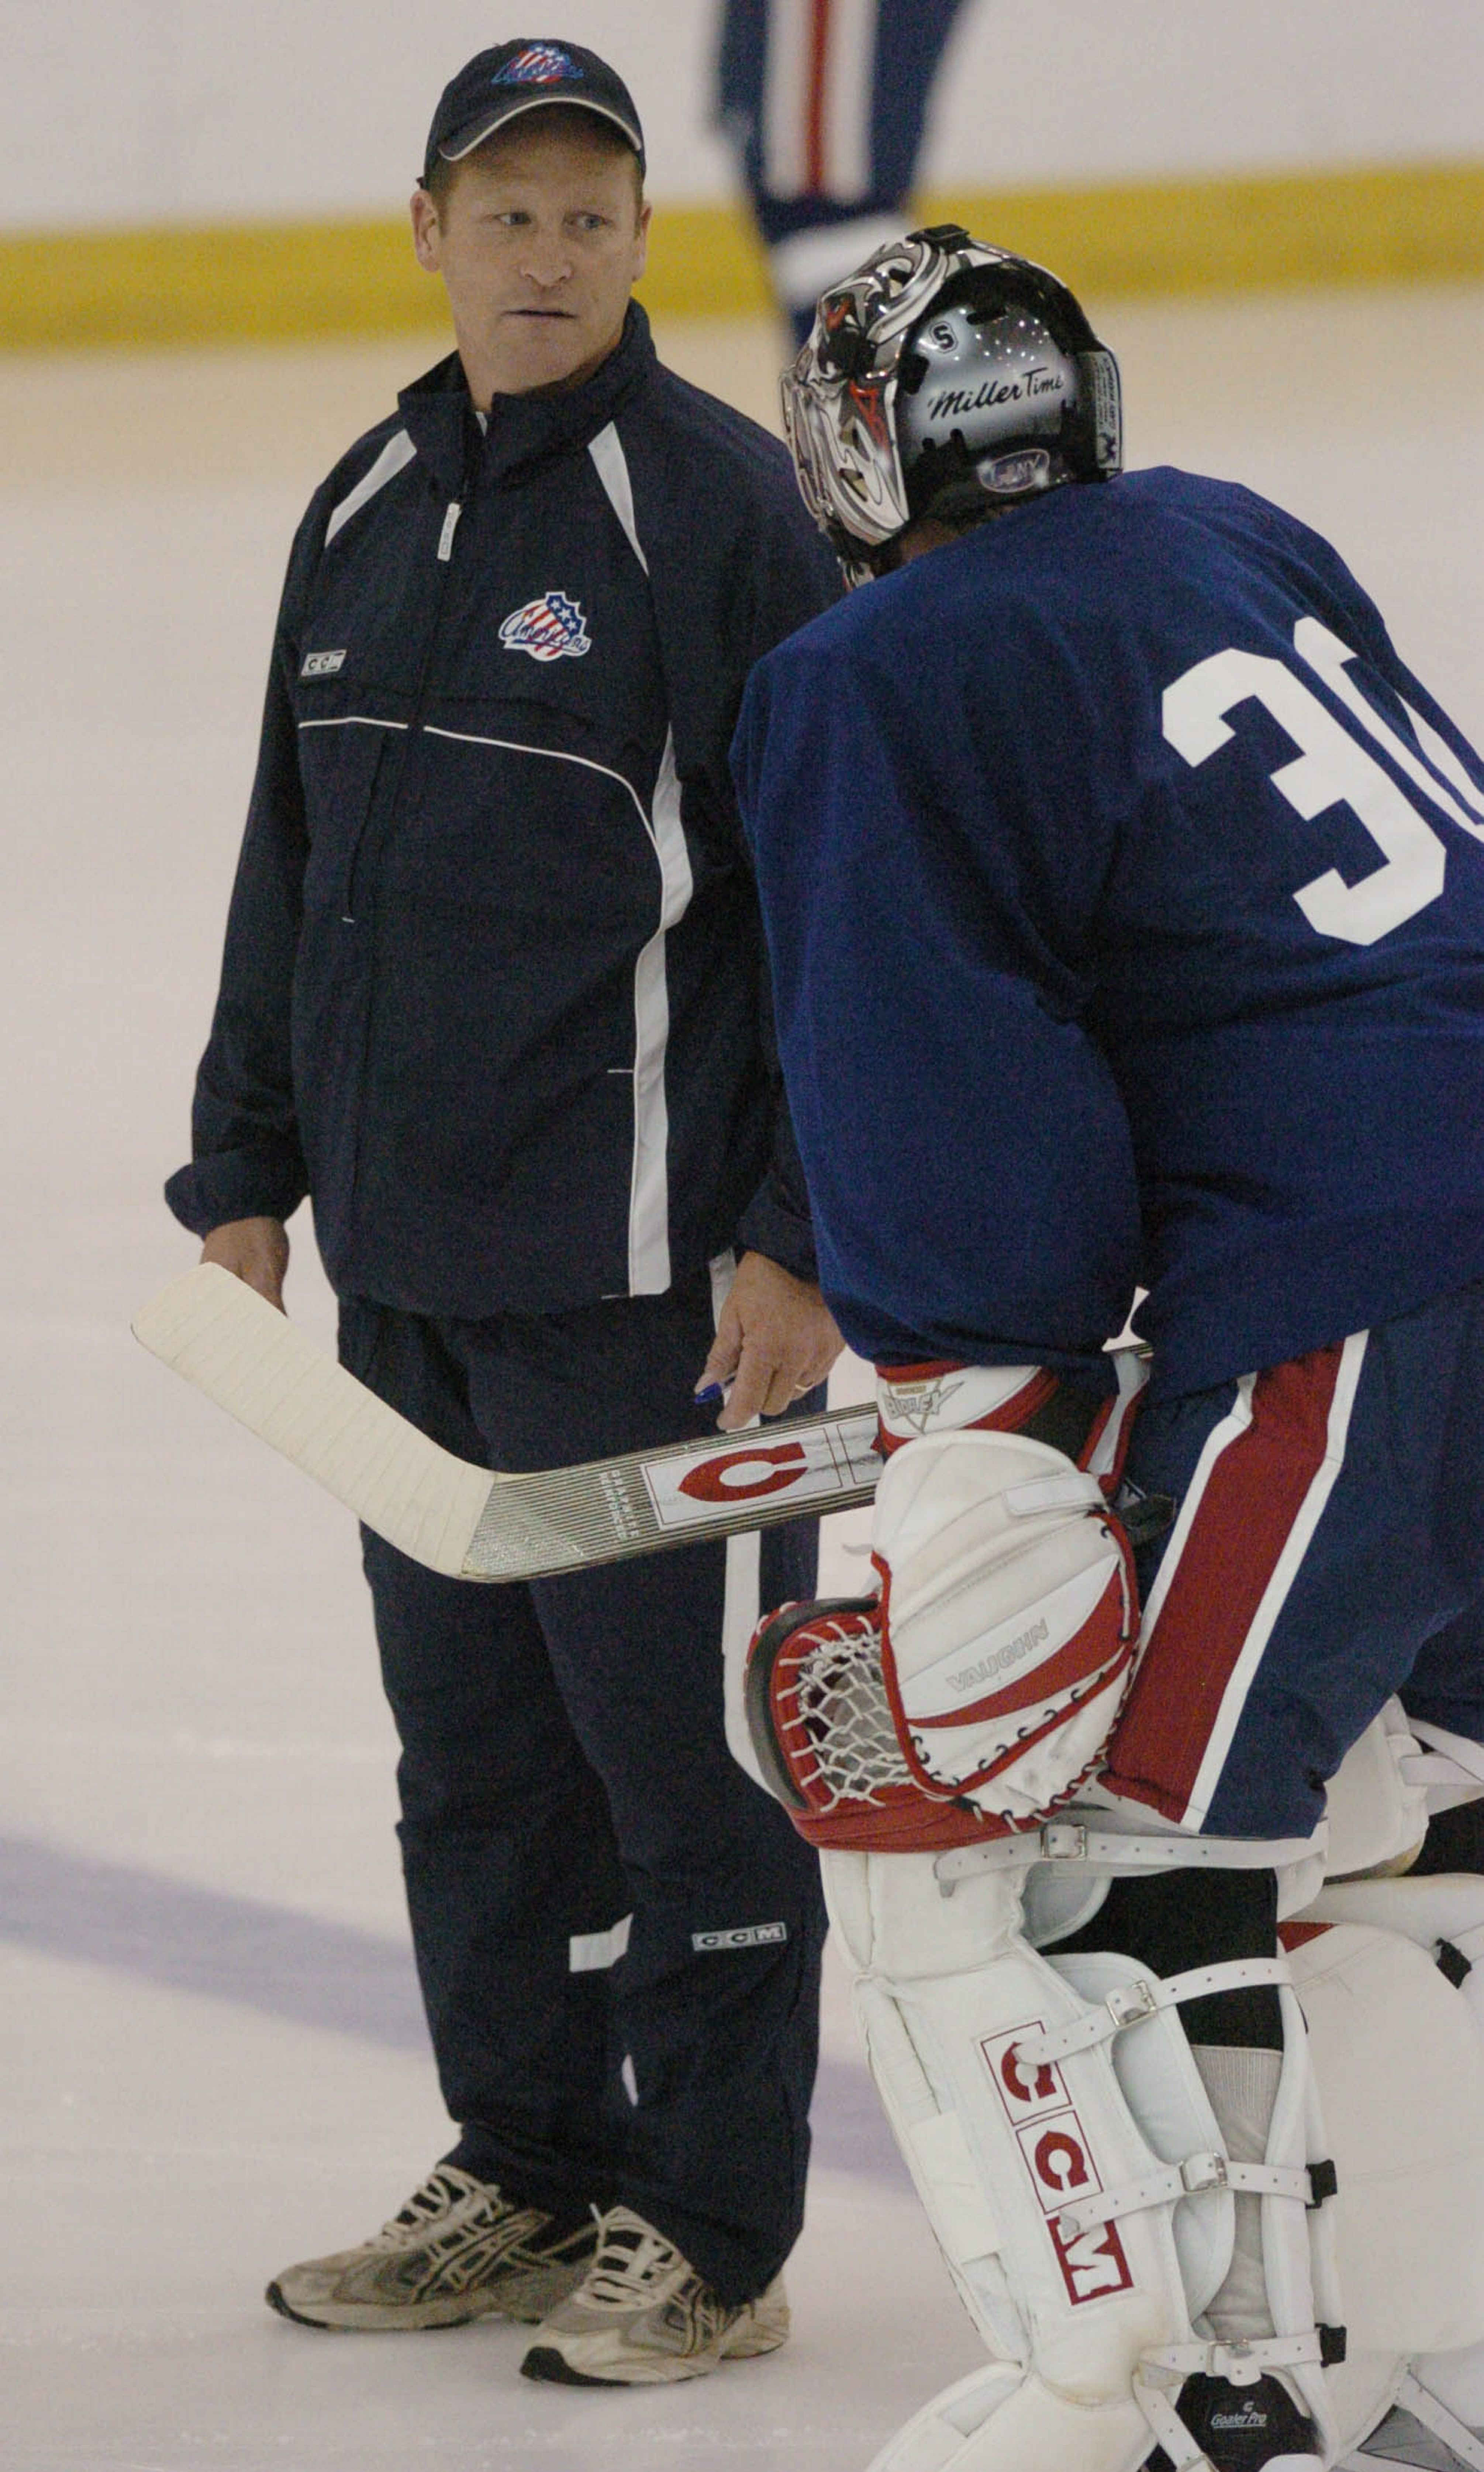 It will be just like old times for new Rochester Americans coach Randy Cunneyworth, who spent eight seasons coaching Rochester from 2000 to 2008.